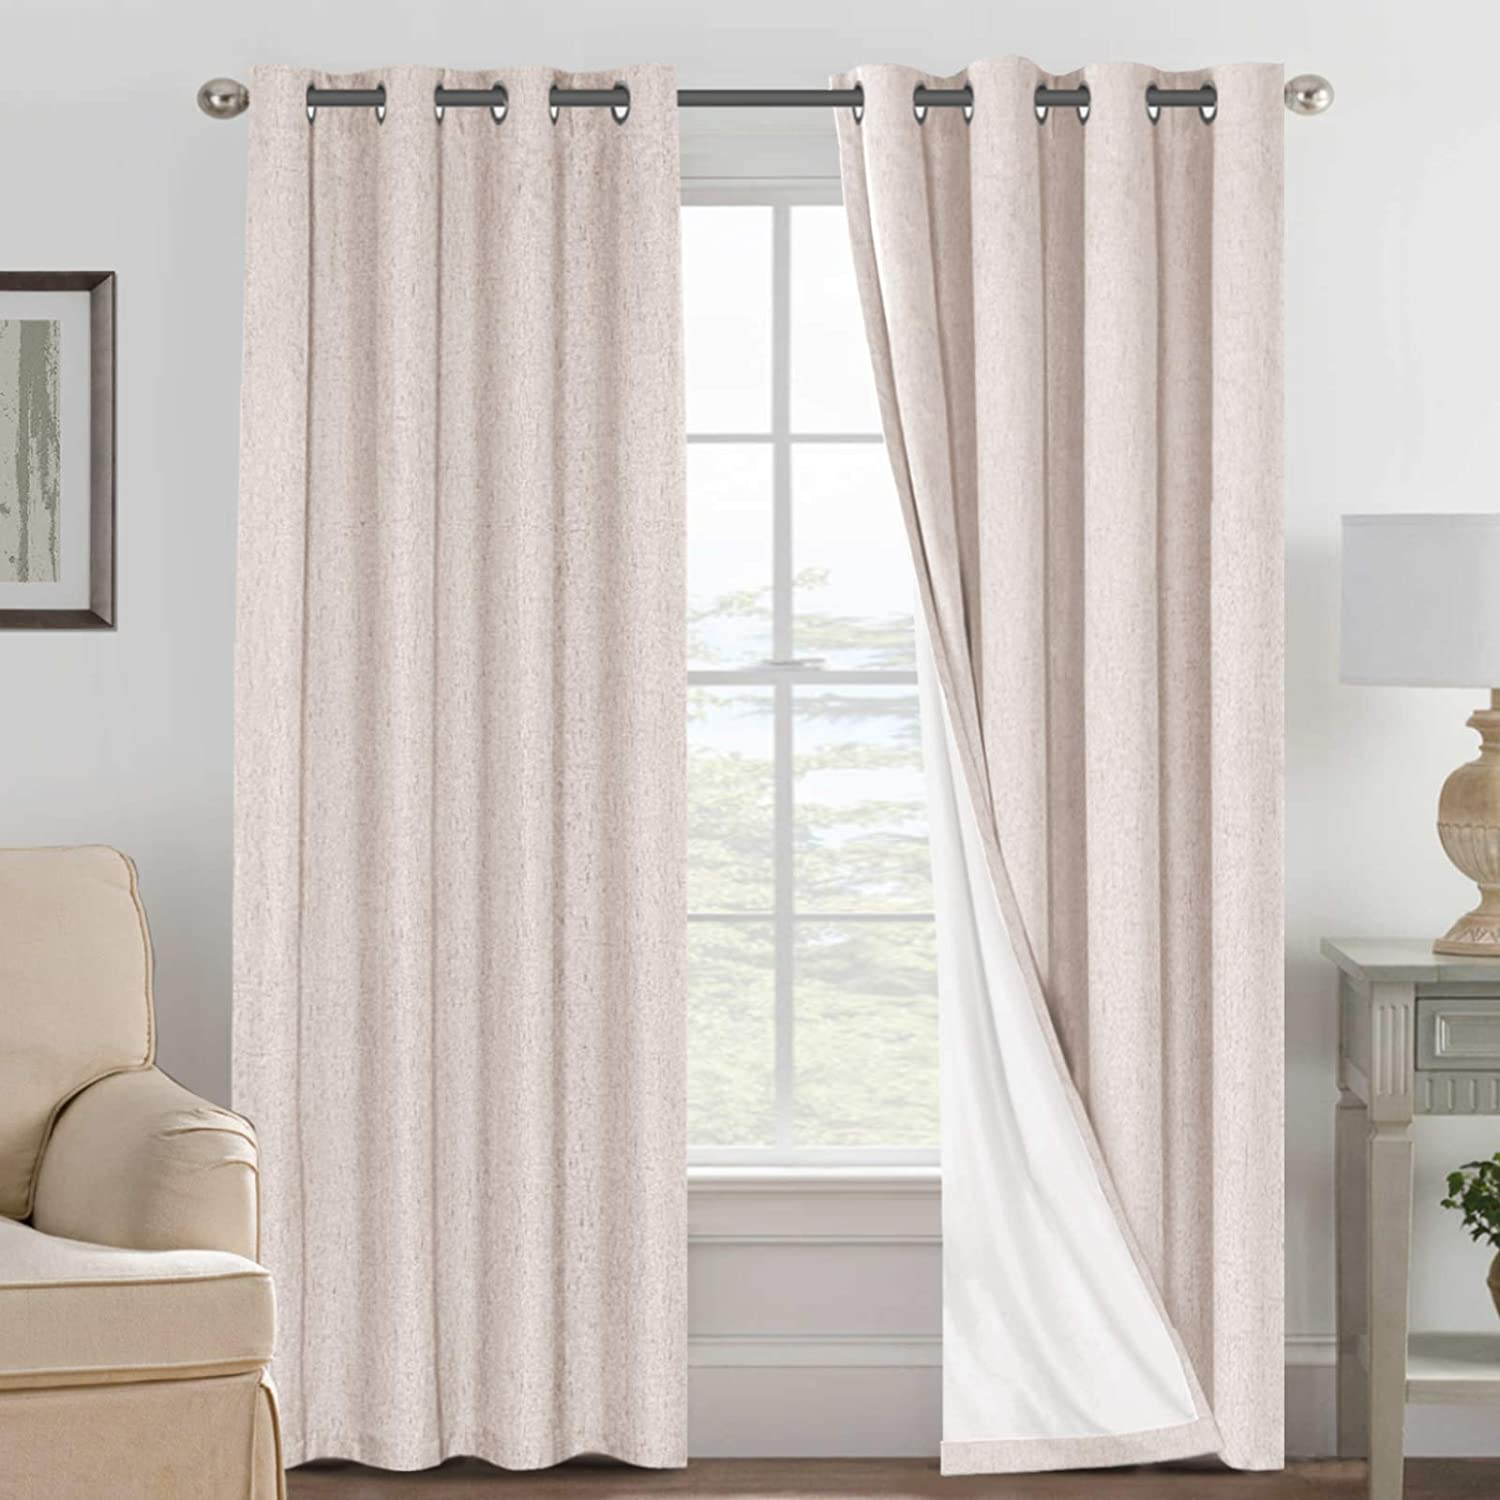 Linen Blackout Curtains 108 Absolutely Long Inches Houston Mall Dealing full price reduction 100%